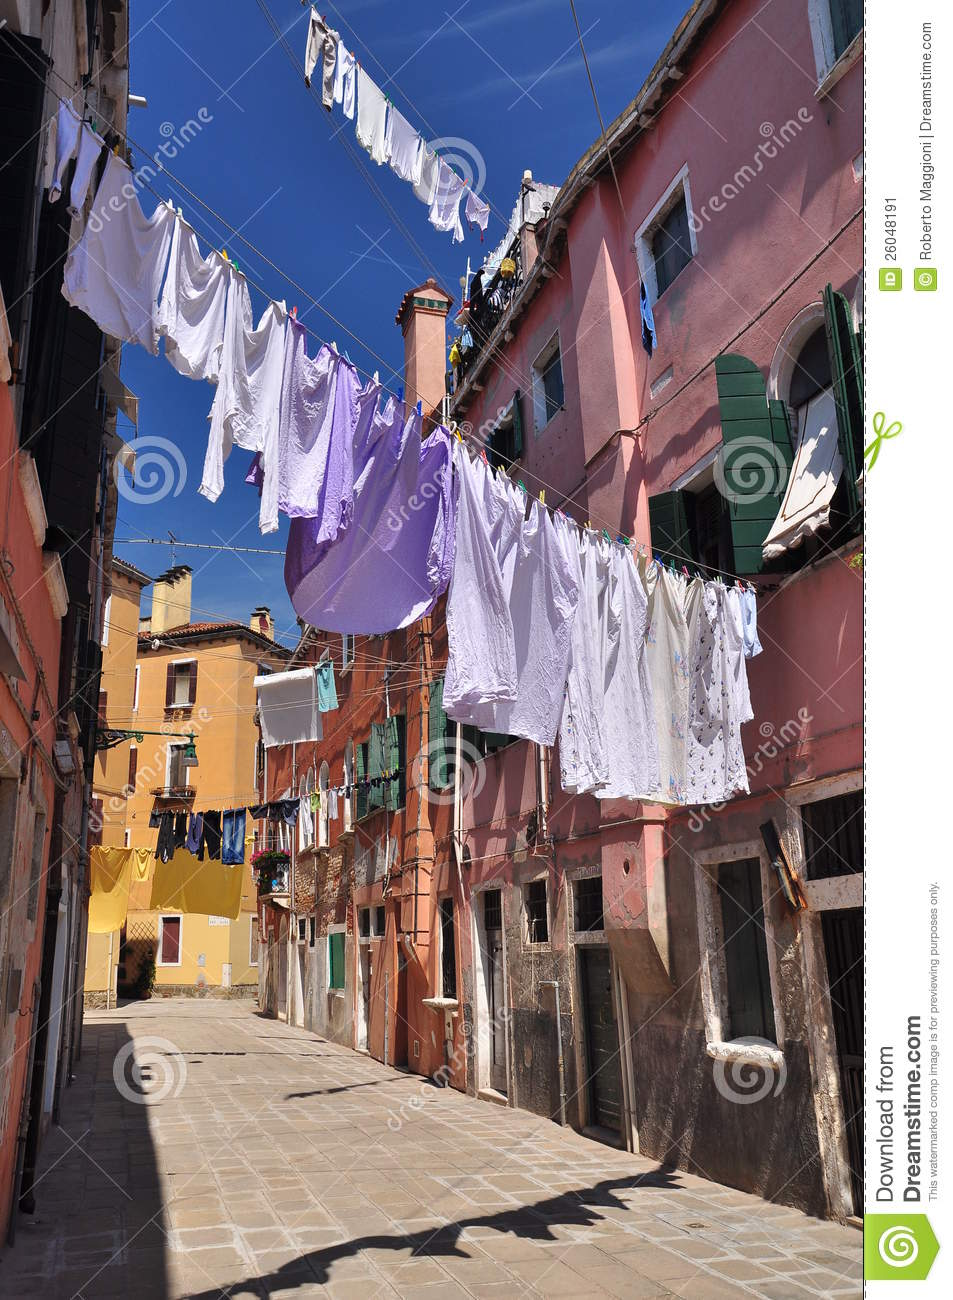 Clothes Line Hanging Above An Alley In Venice Stock Image